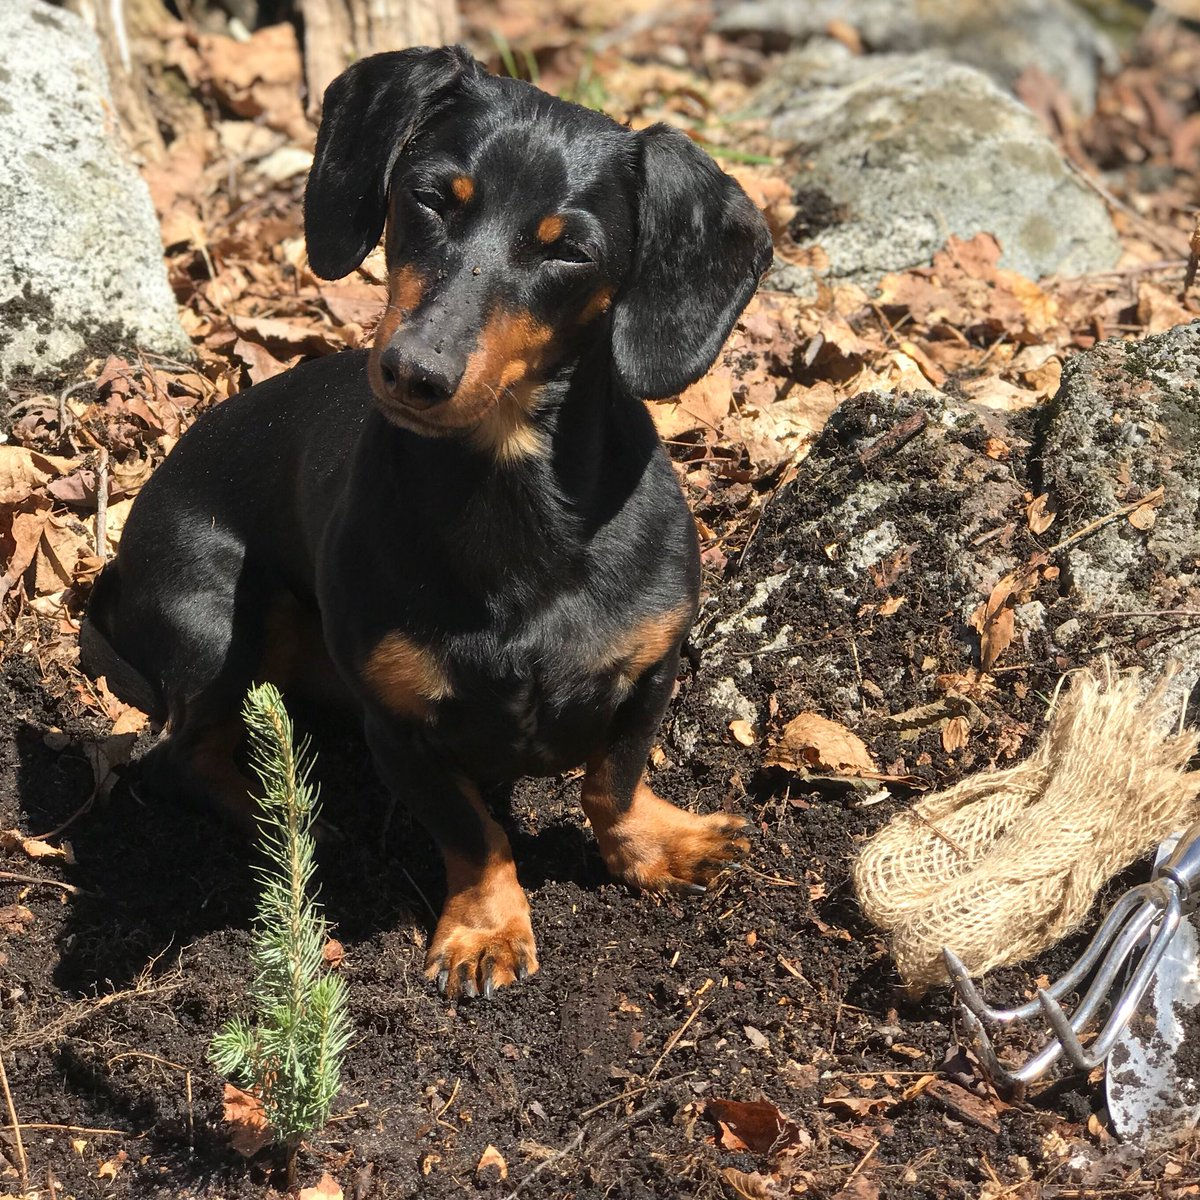 RT @Celeb_Dachshund: I planted a tree today for #EarthDay. And I didn't even dig it up again afterwards. https://t.co/WvAvcCvmUZ